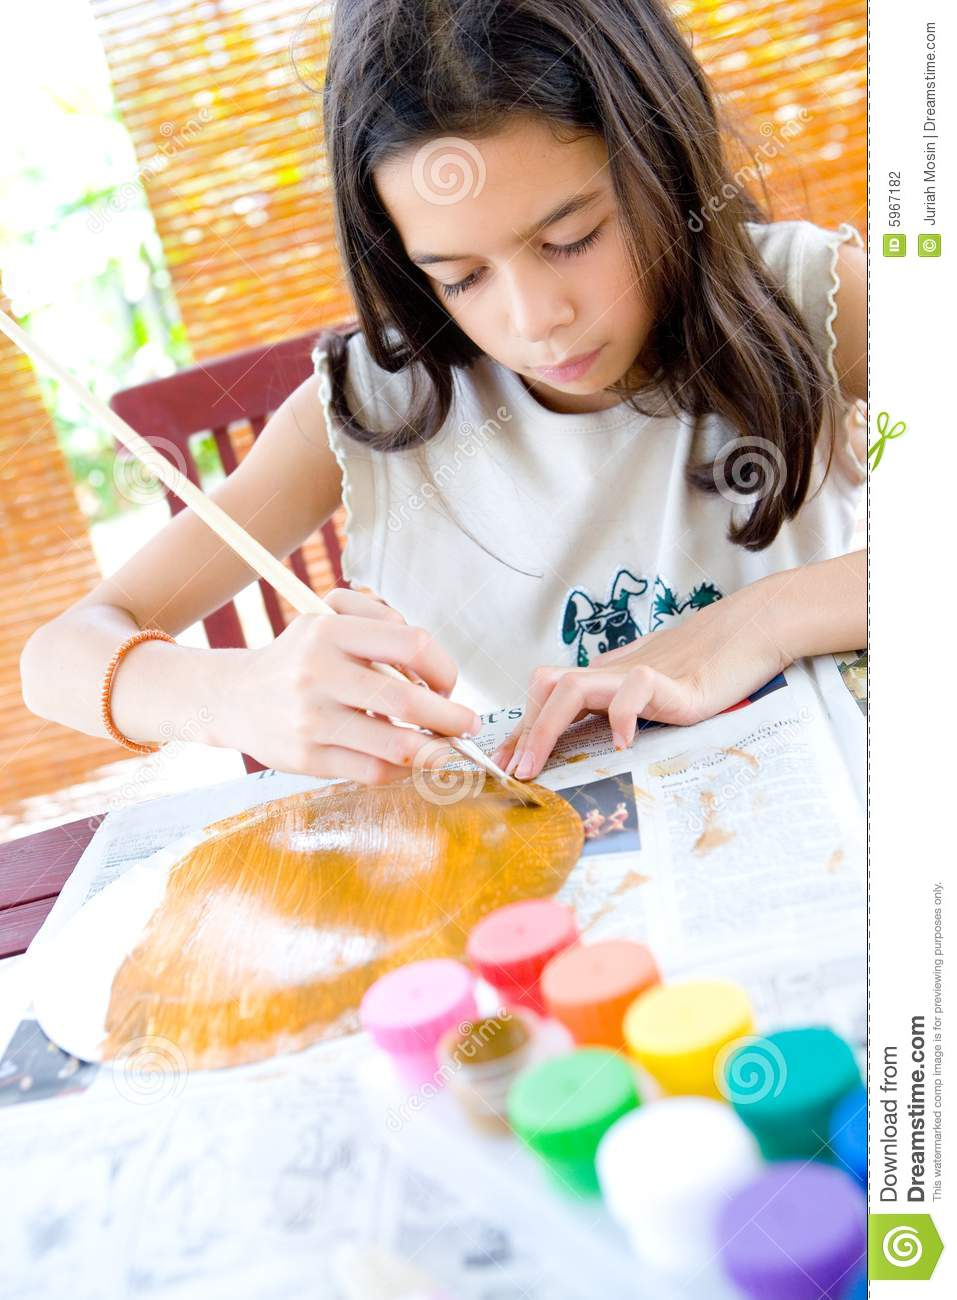 Girl painting a paper plate with poster paint